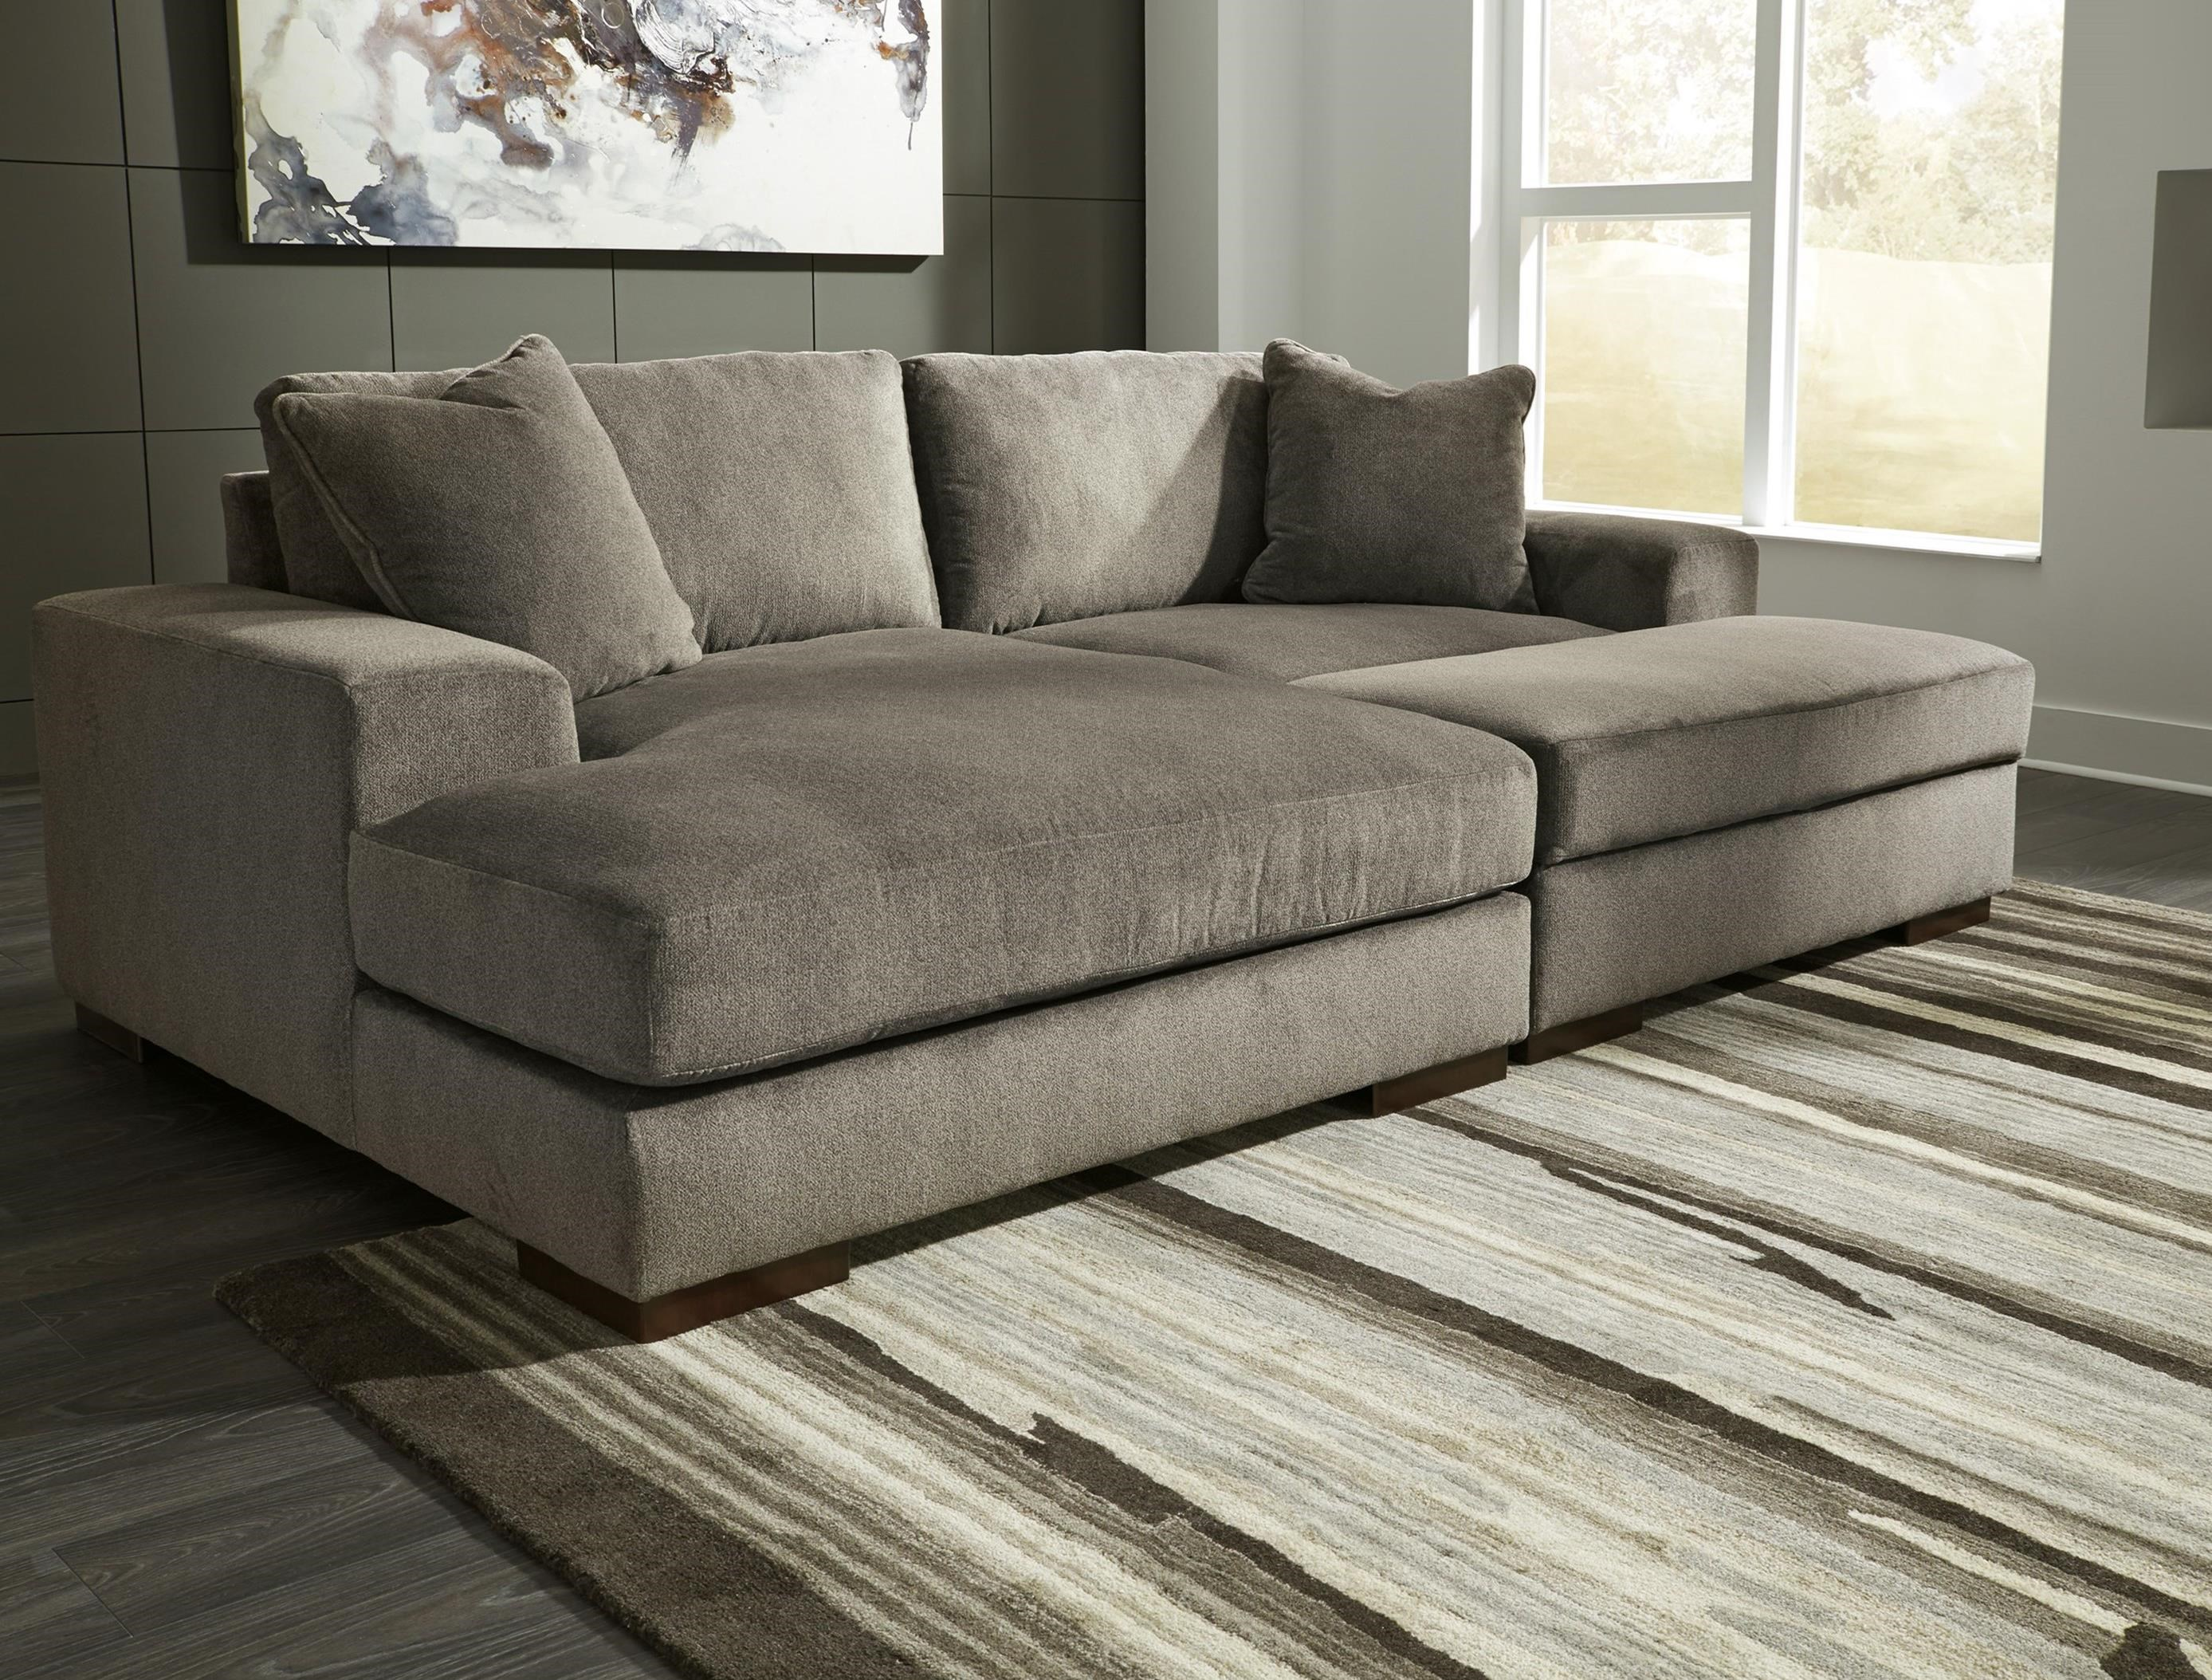 sofa beds phoenix arizona ebay sofas for sale leather benchcraft manzani contemporary 3 piece sectional with